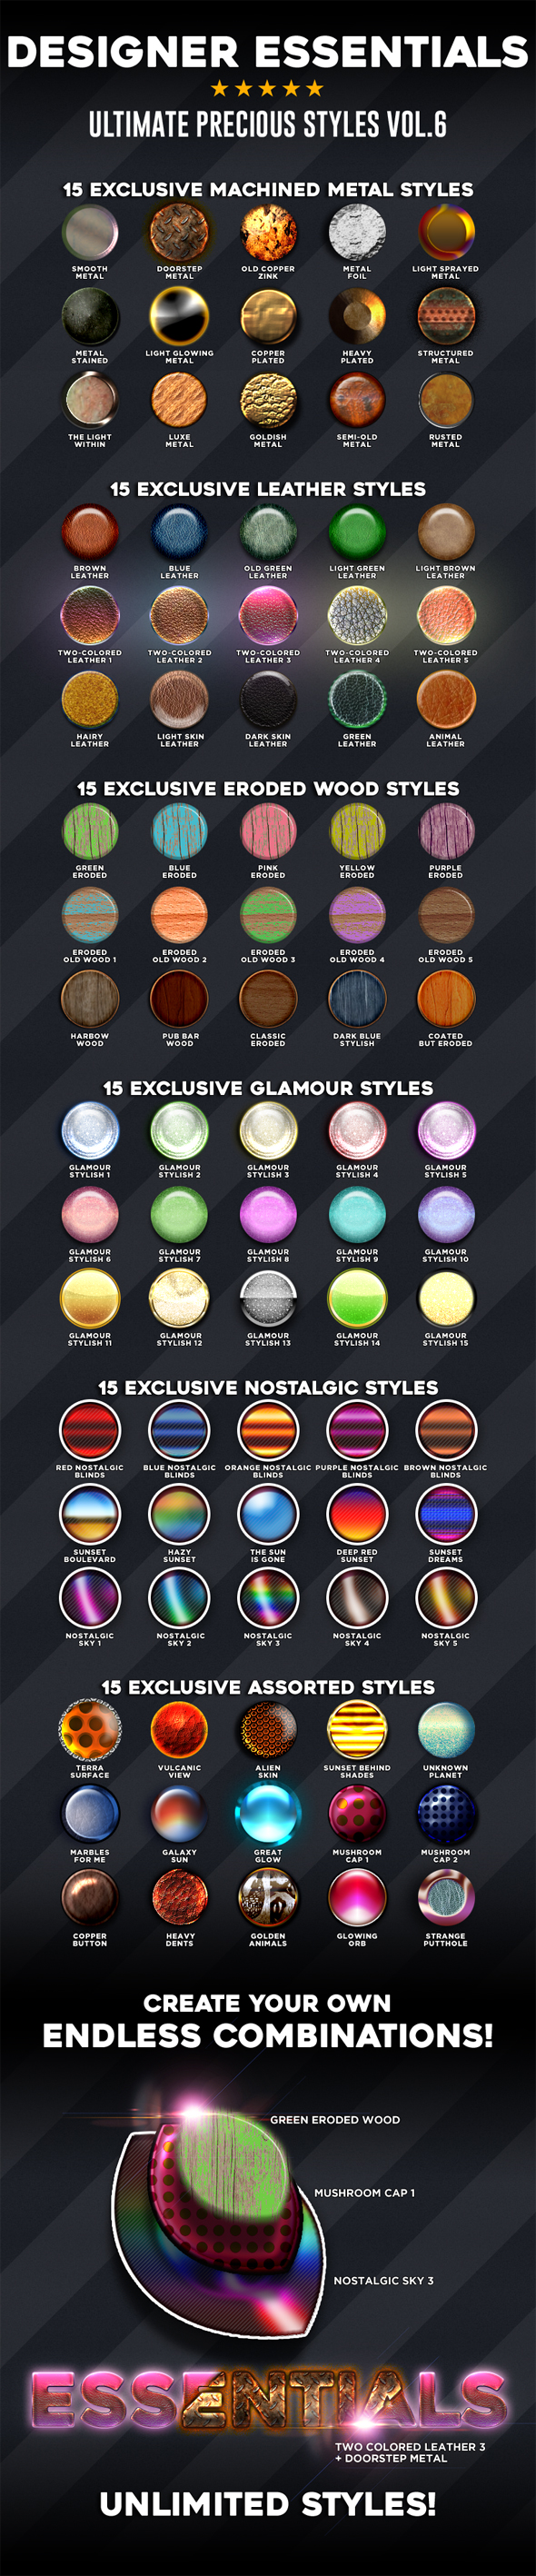 Designer Essentials Ultimate Precious Styles Vol.6 - Styles Photoshop